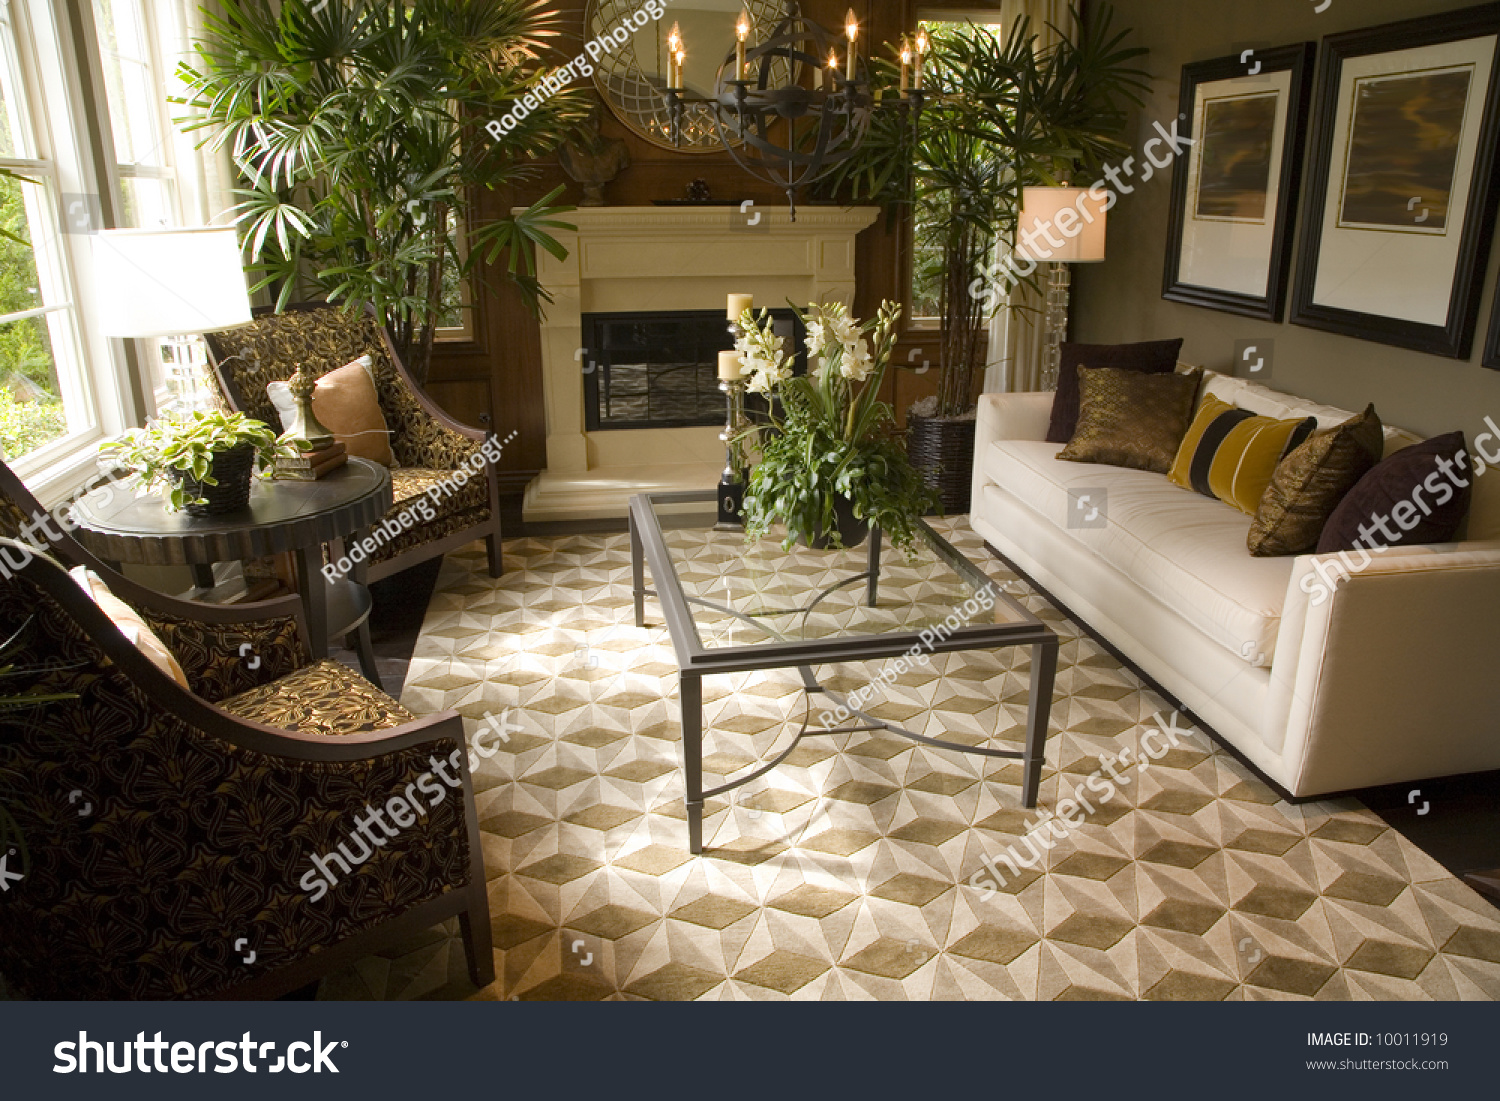 Contemporary Decor Stock Photo Luxury Home Living Room With Contemporary Decor 10011919jpg